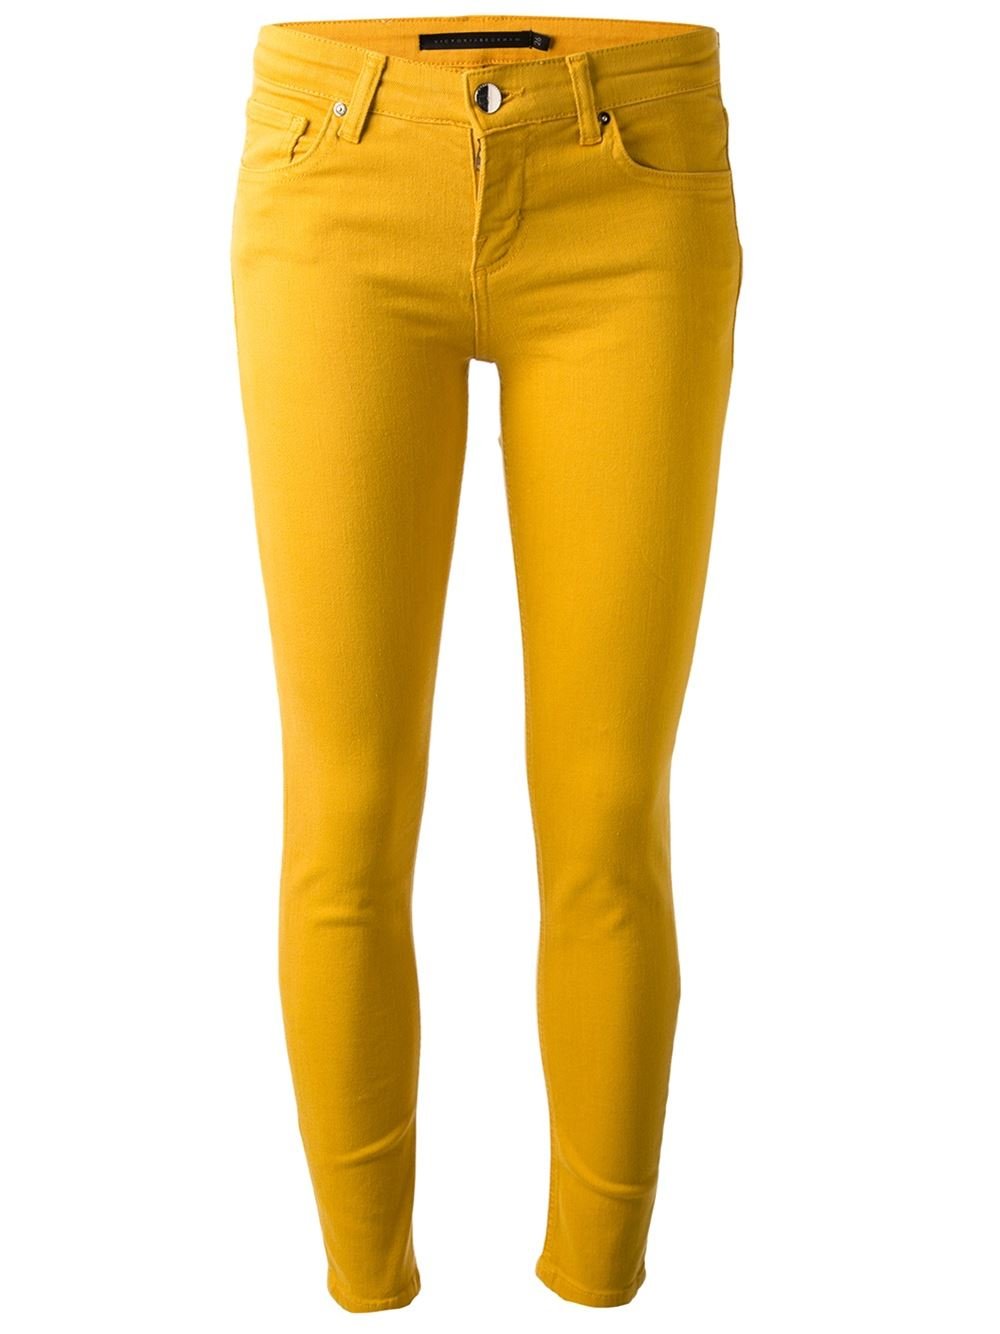 Yellow slim fit jean from Victoria Beckham Denim